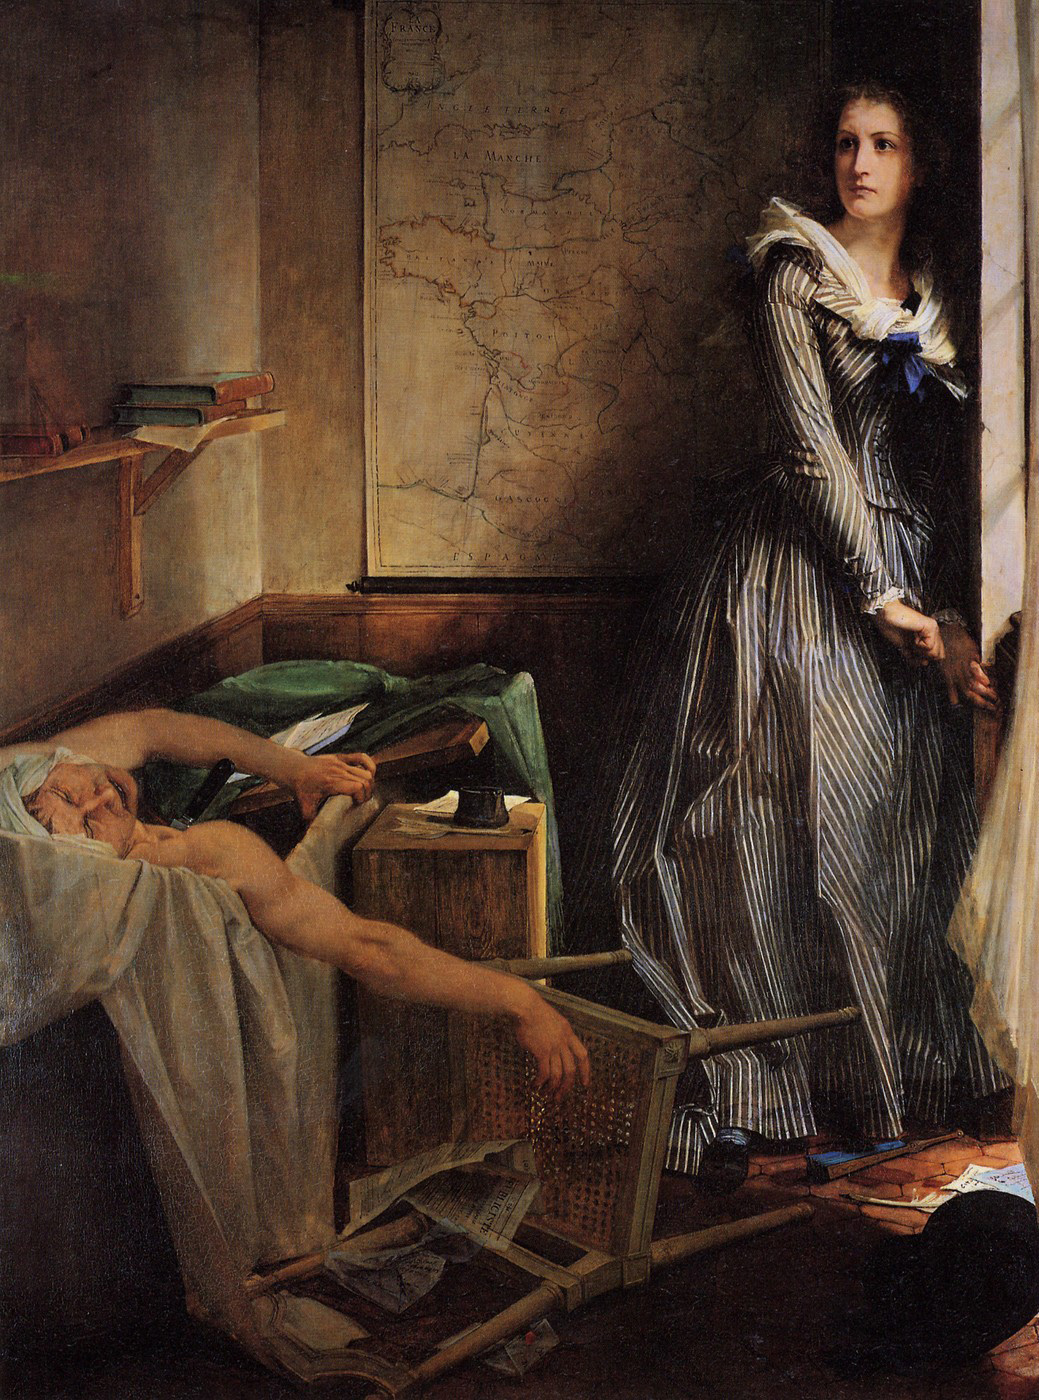 Jean-Paul Marat stabbed through the heart by Charlotte Corday in a bathtub (painted by Paul-Jacques-Aimé Baudry)